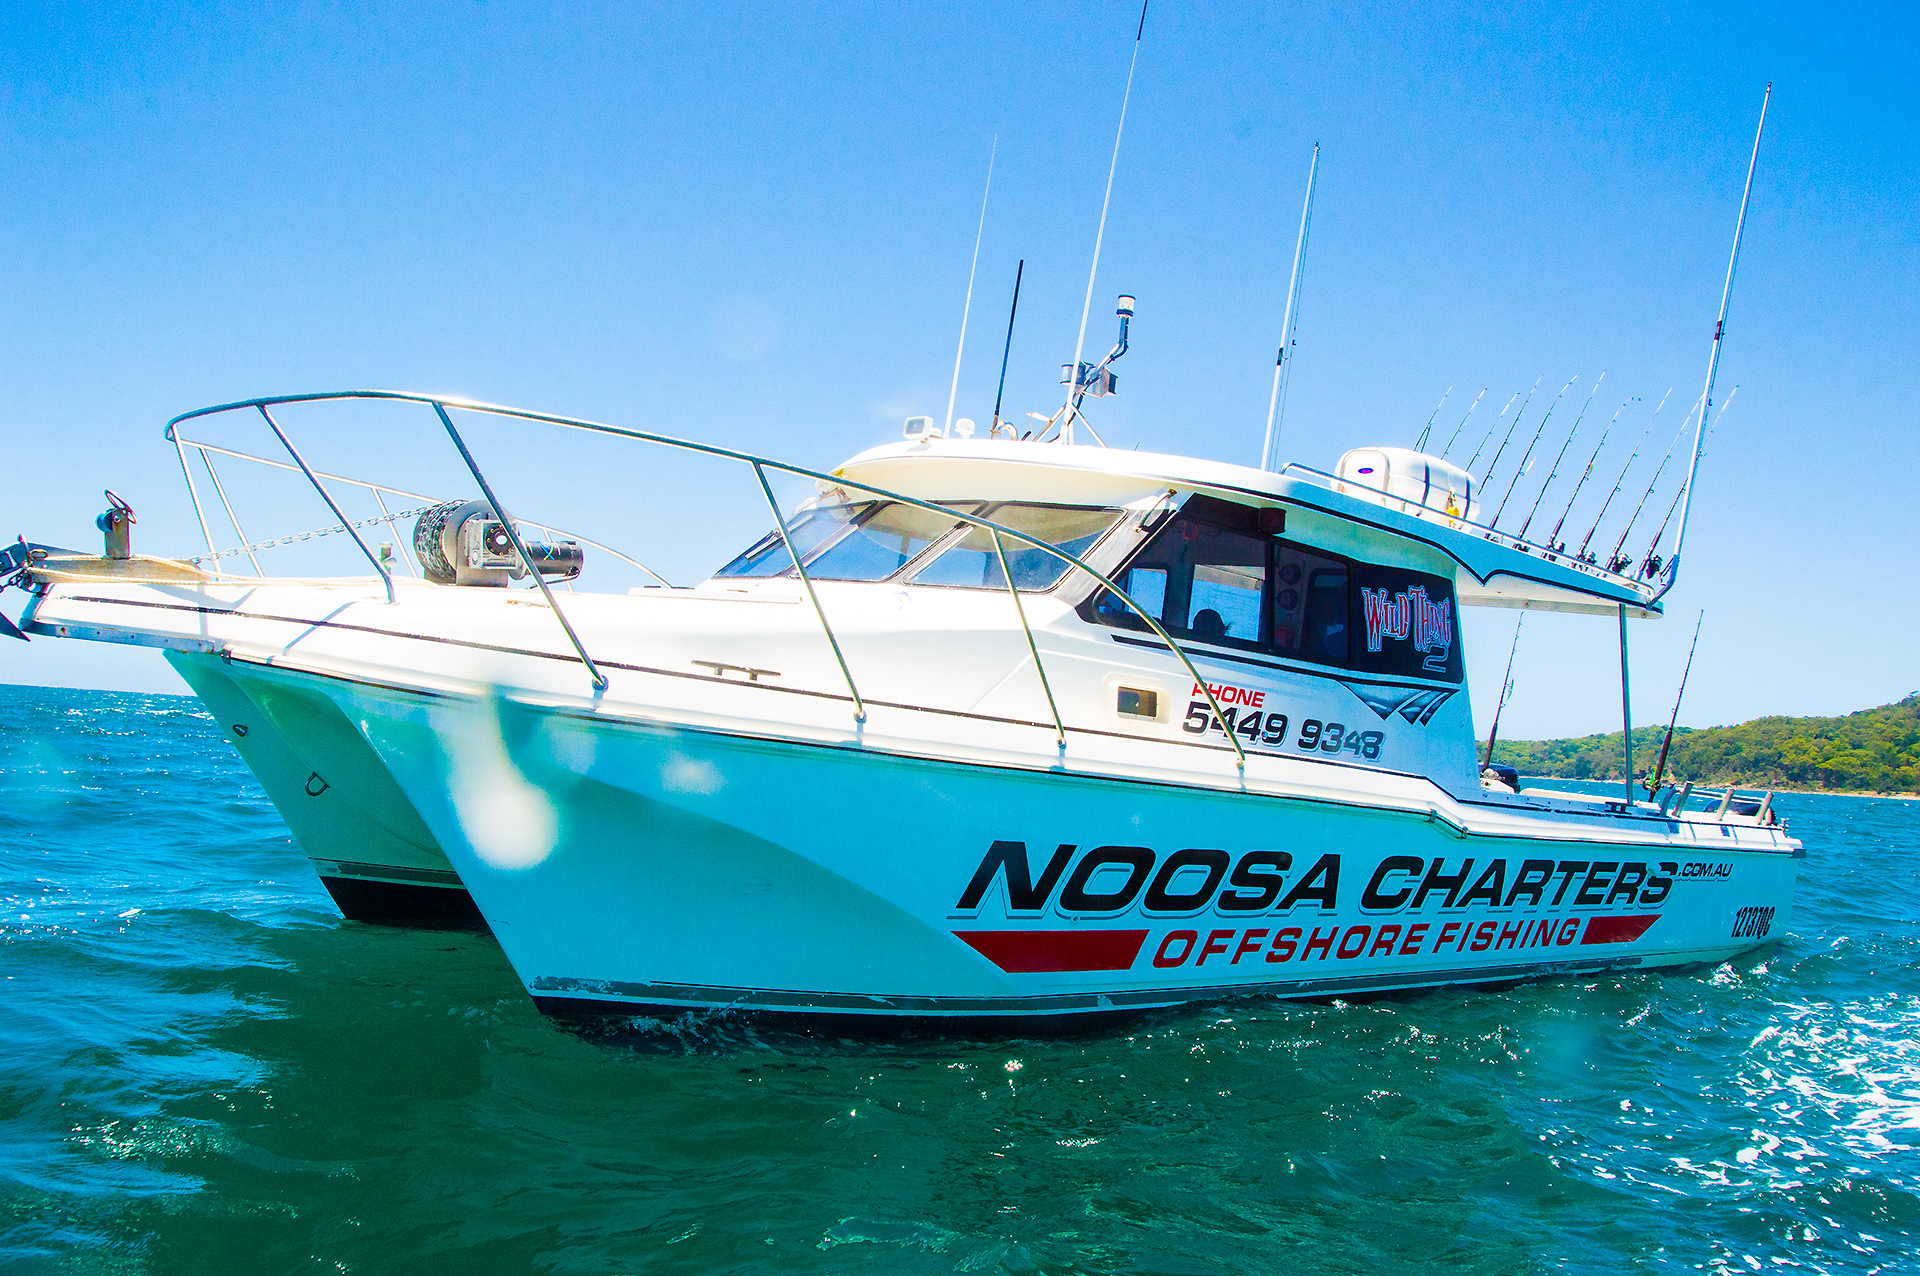 Wild Thing! offshore fishing charter boat in Noosa